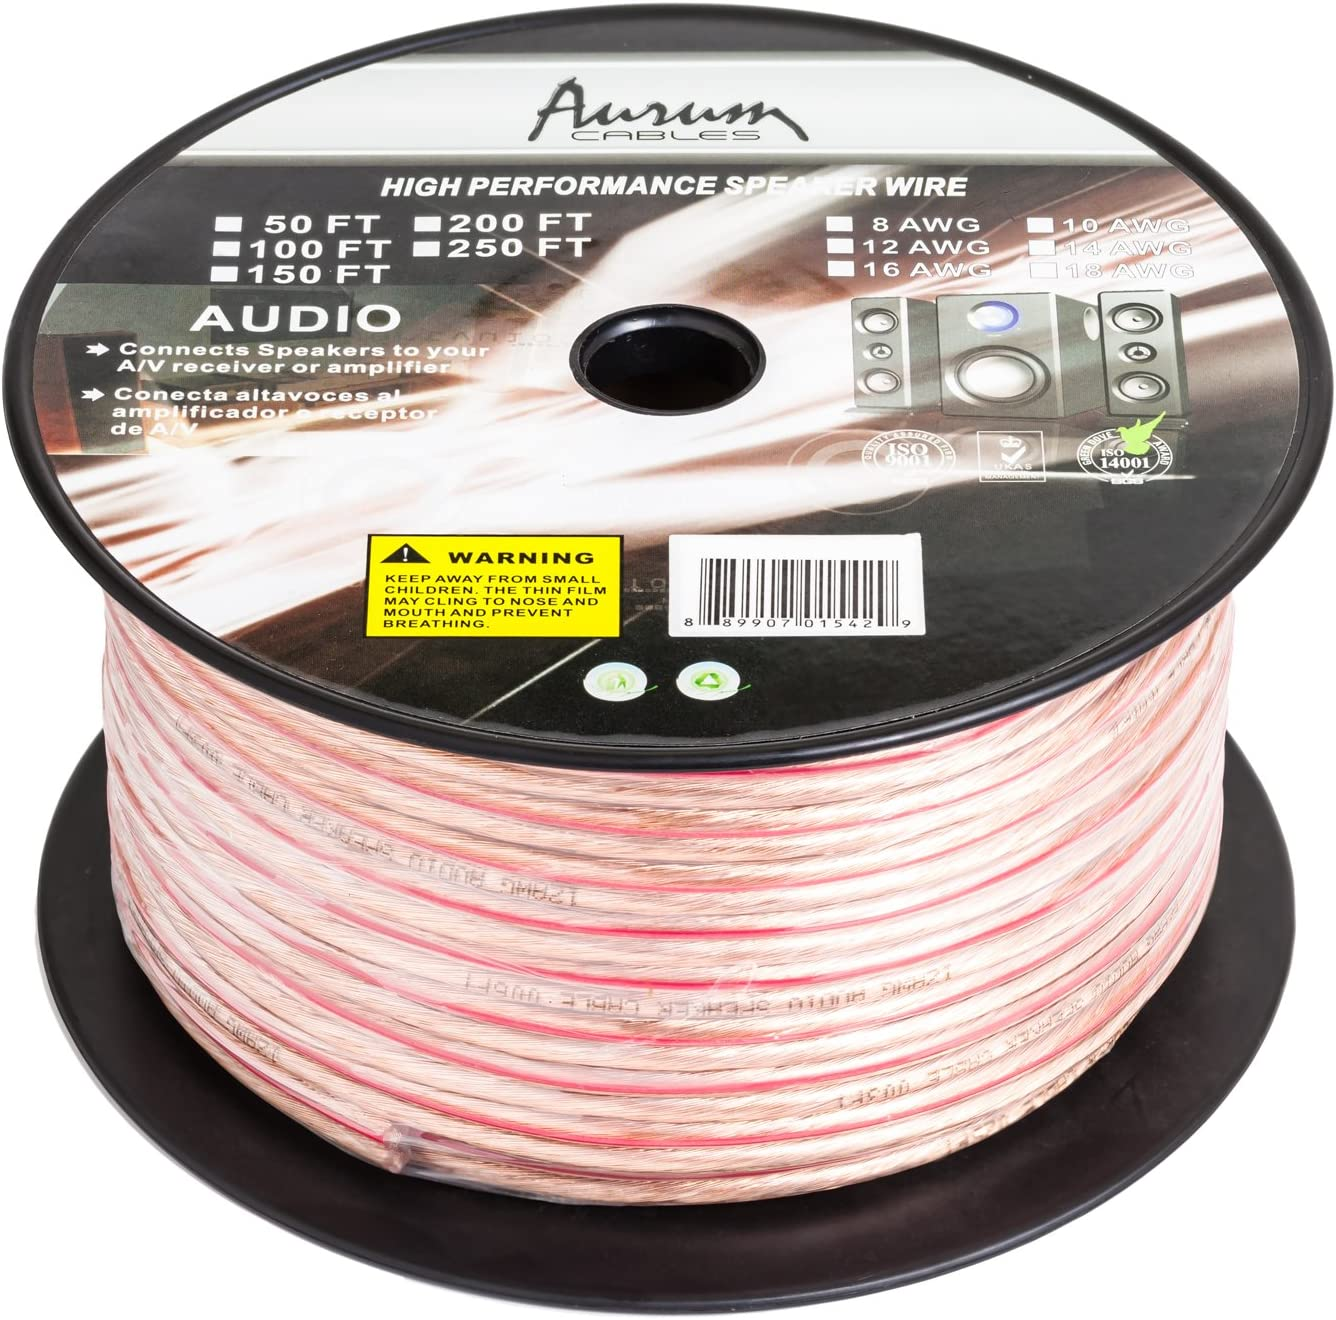 Aurum Cables 14 Gauge Transparent PVC Speaker Zip Wire